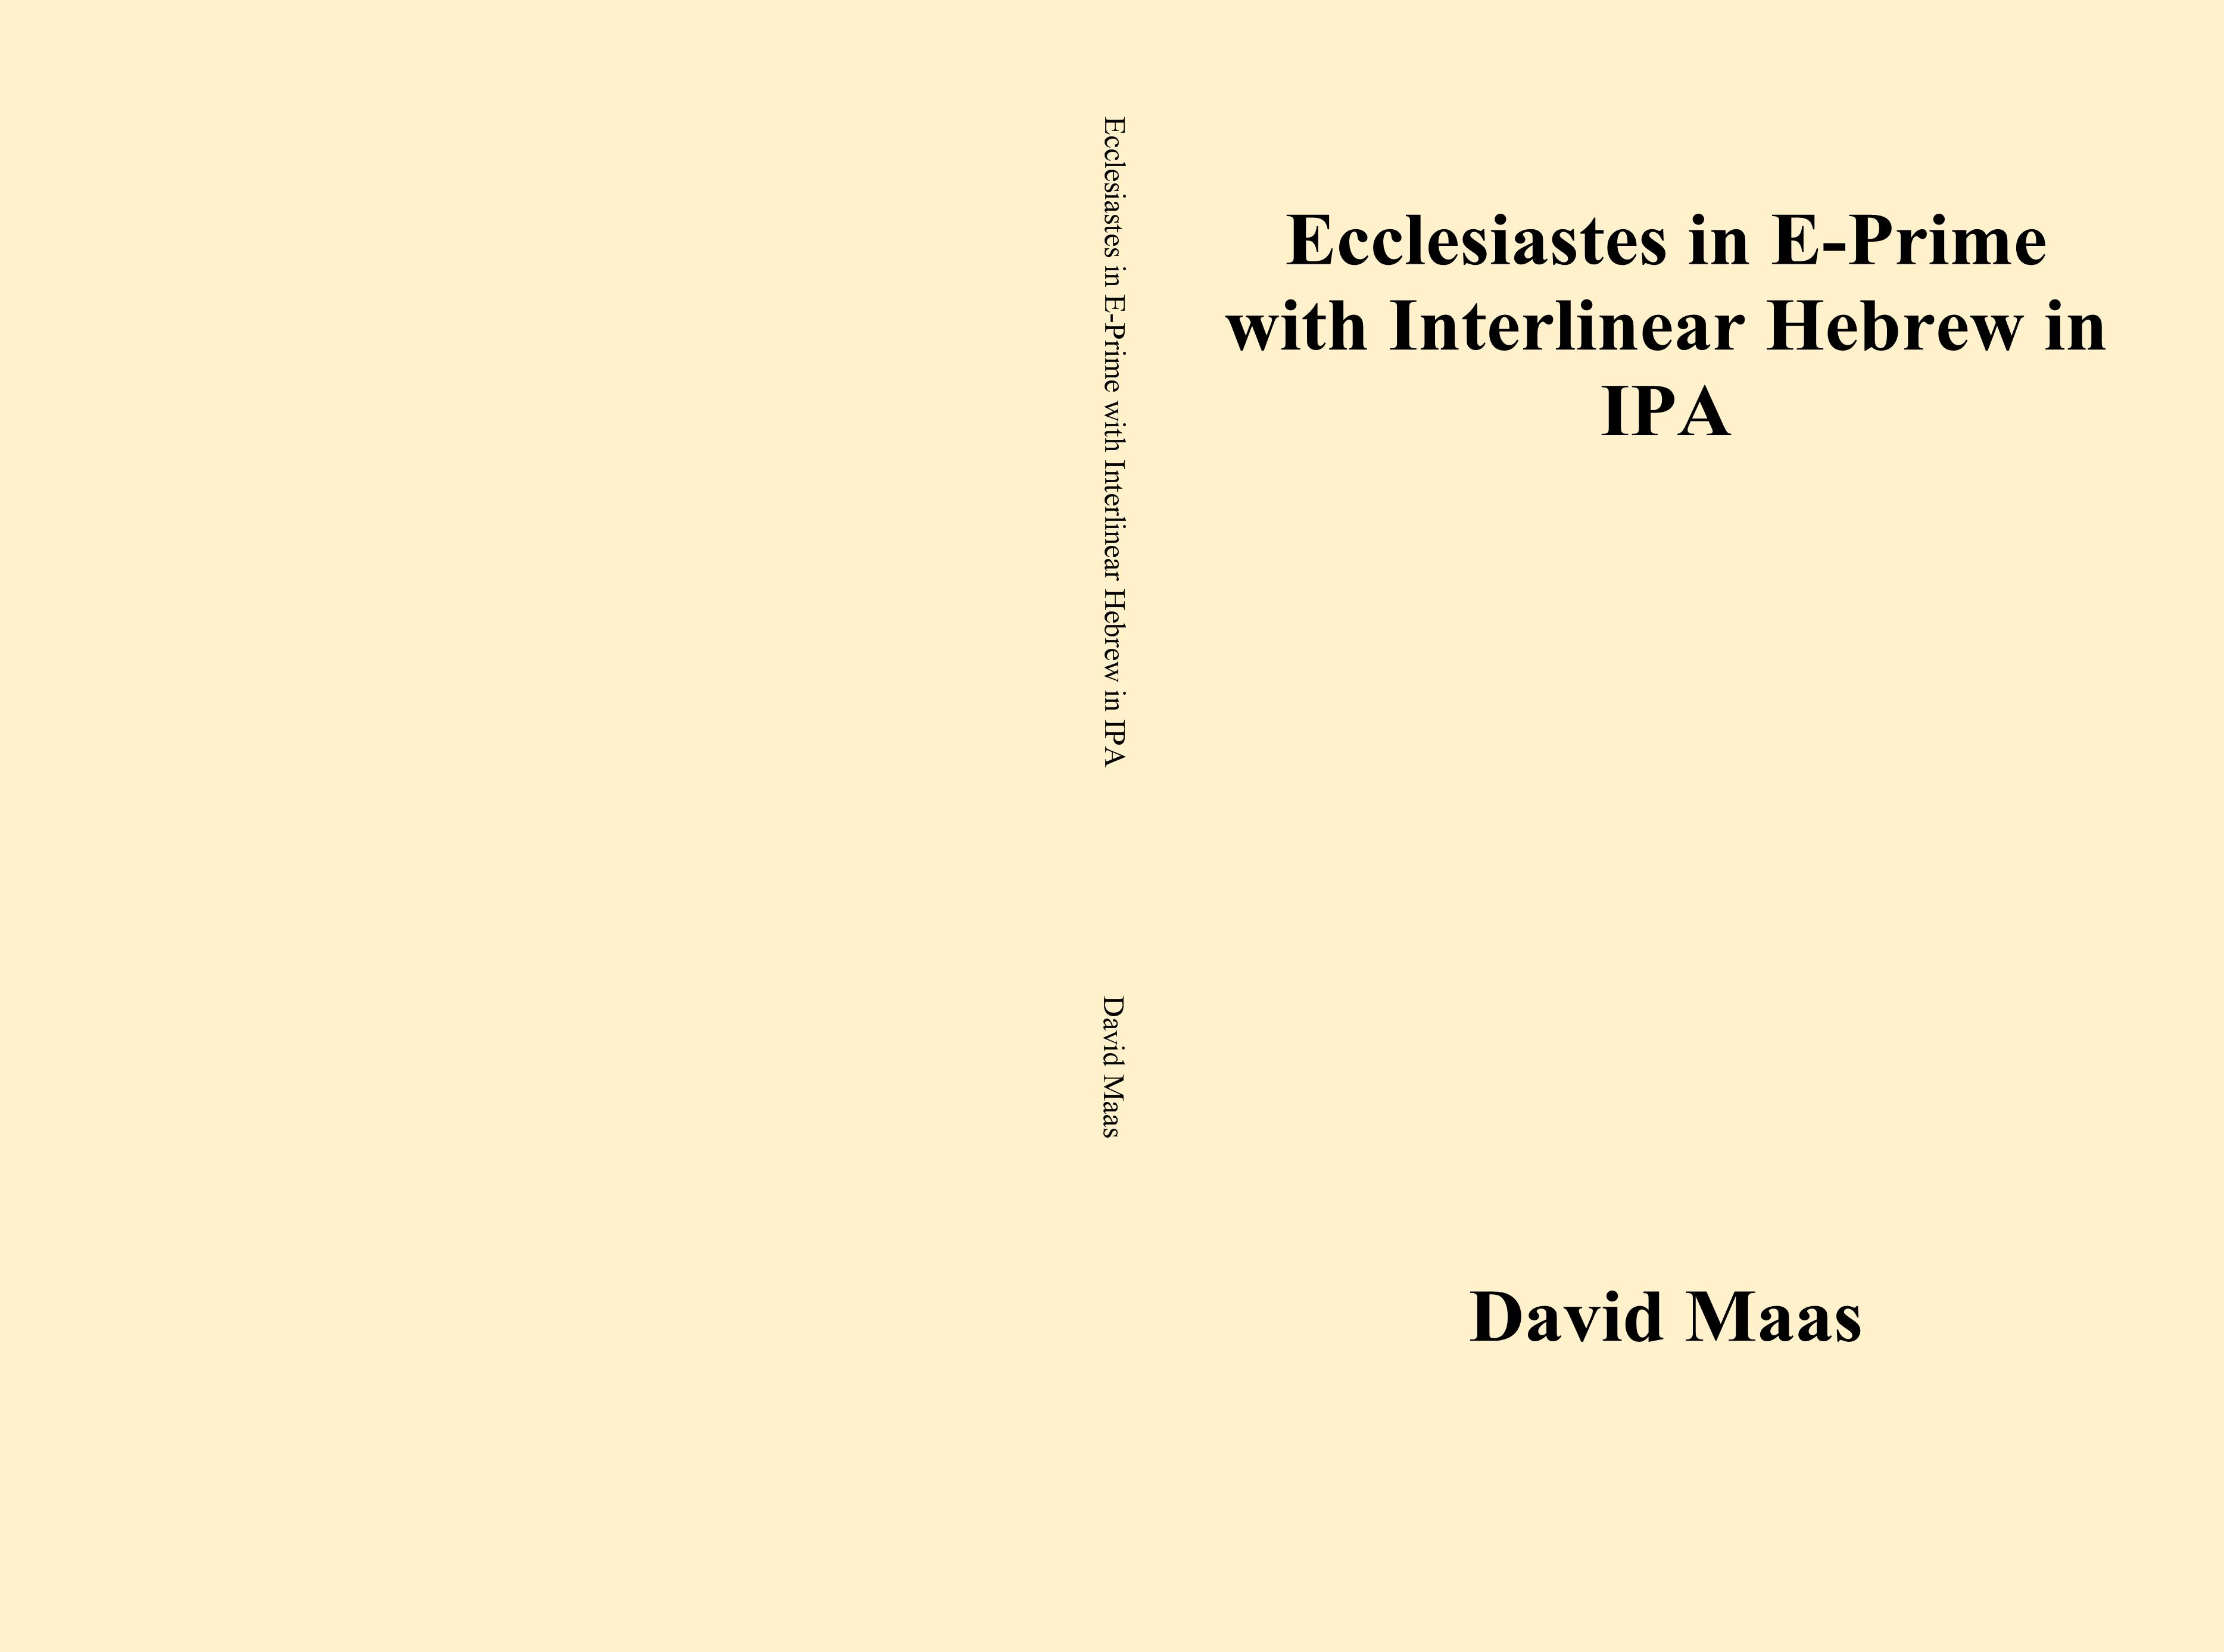 Ecclesiastes in E-Prime with Interlinear Hebrew in IPA cover image